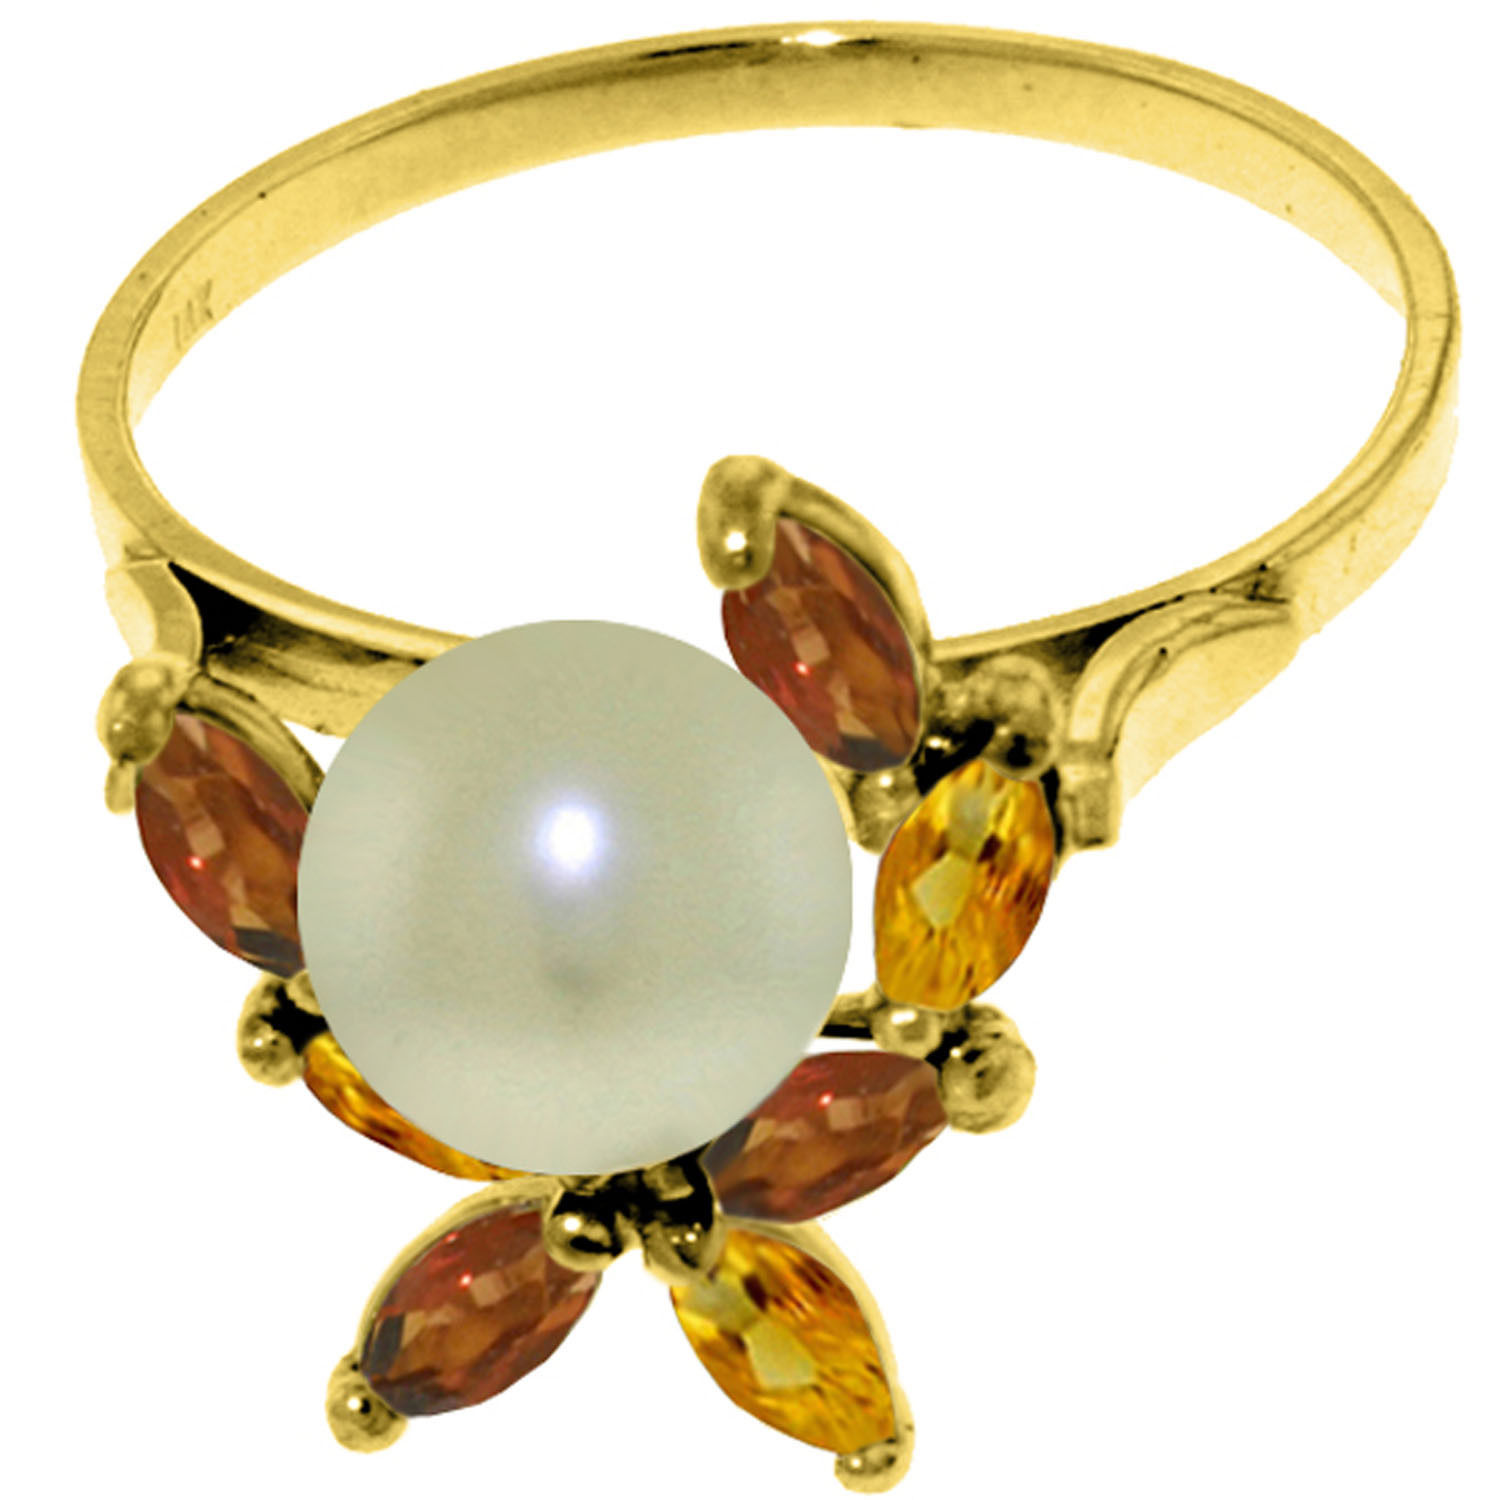 Brand New 2.63 Carat 14K Solid Gold Ring Natural Garnet, Citrine pearl